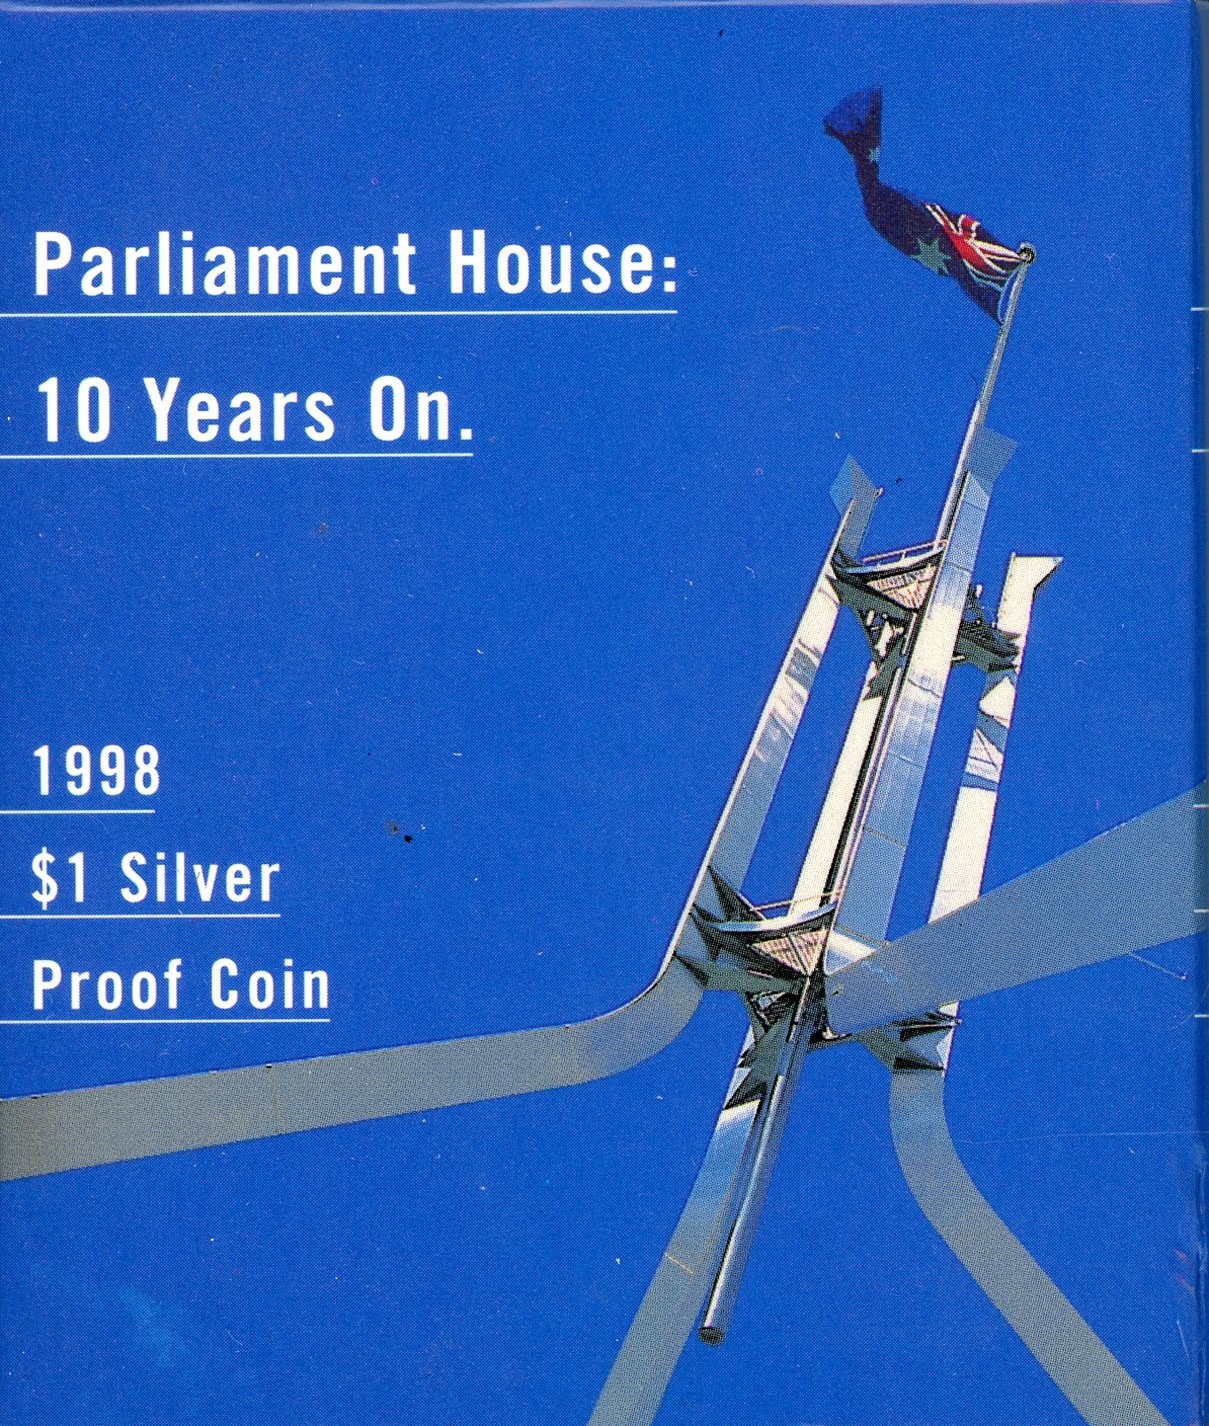 Thumbnail for 1998 Subscription Silver Proof Dollar - Parliament House Ten Years on